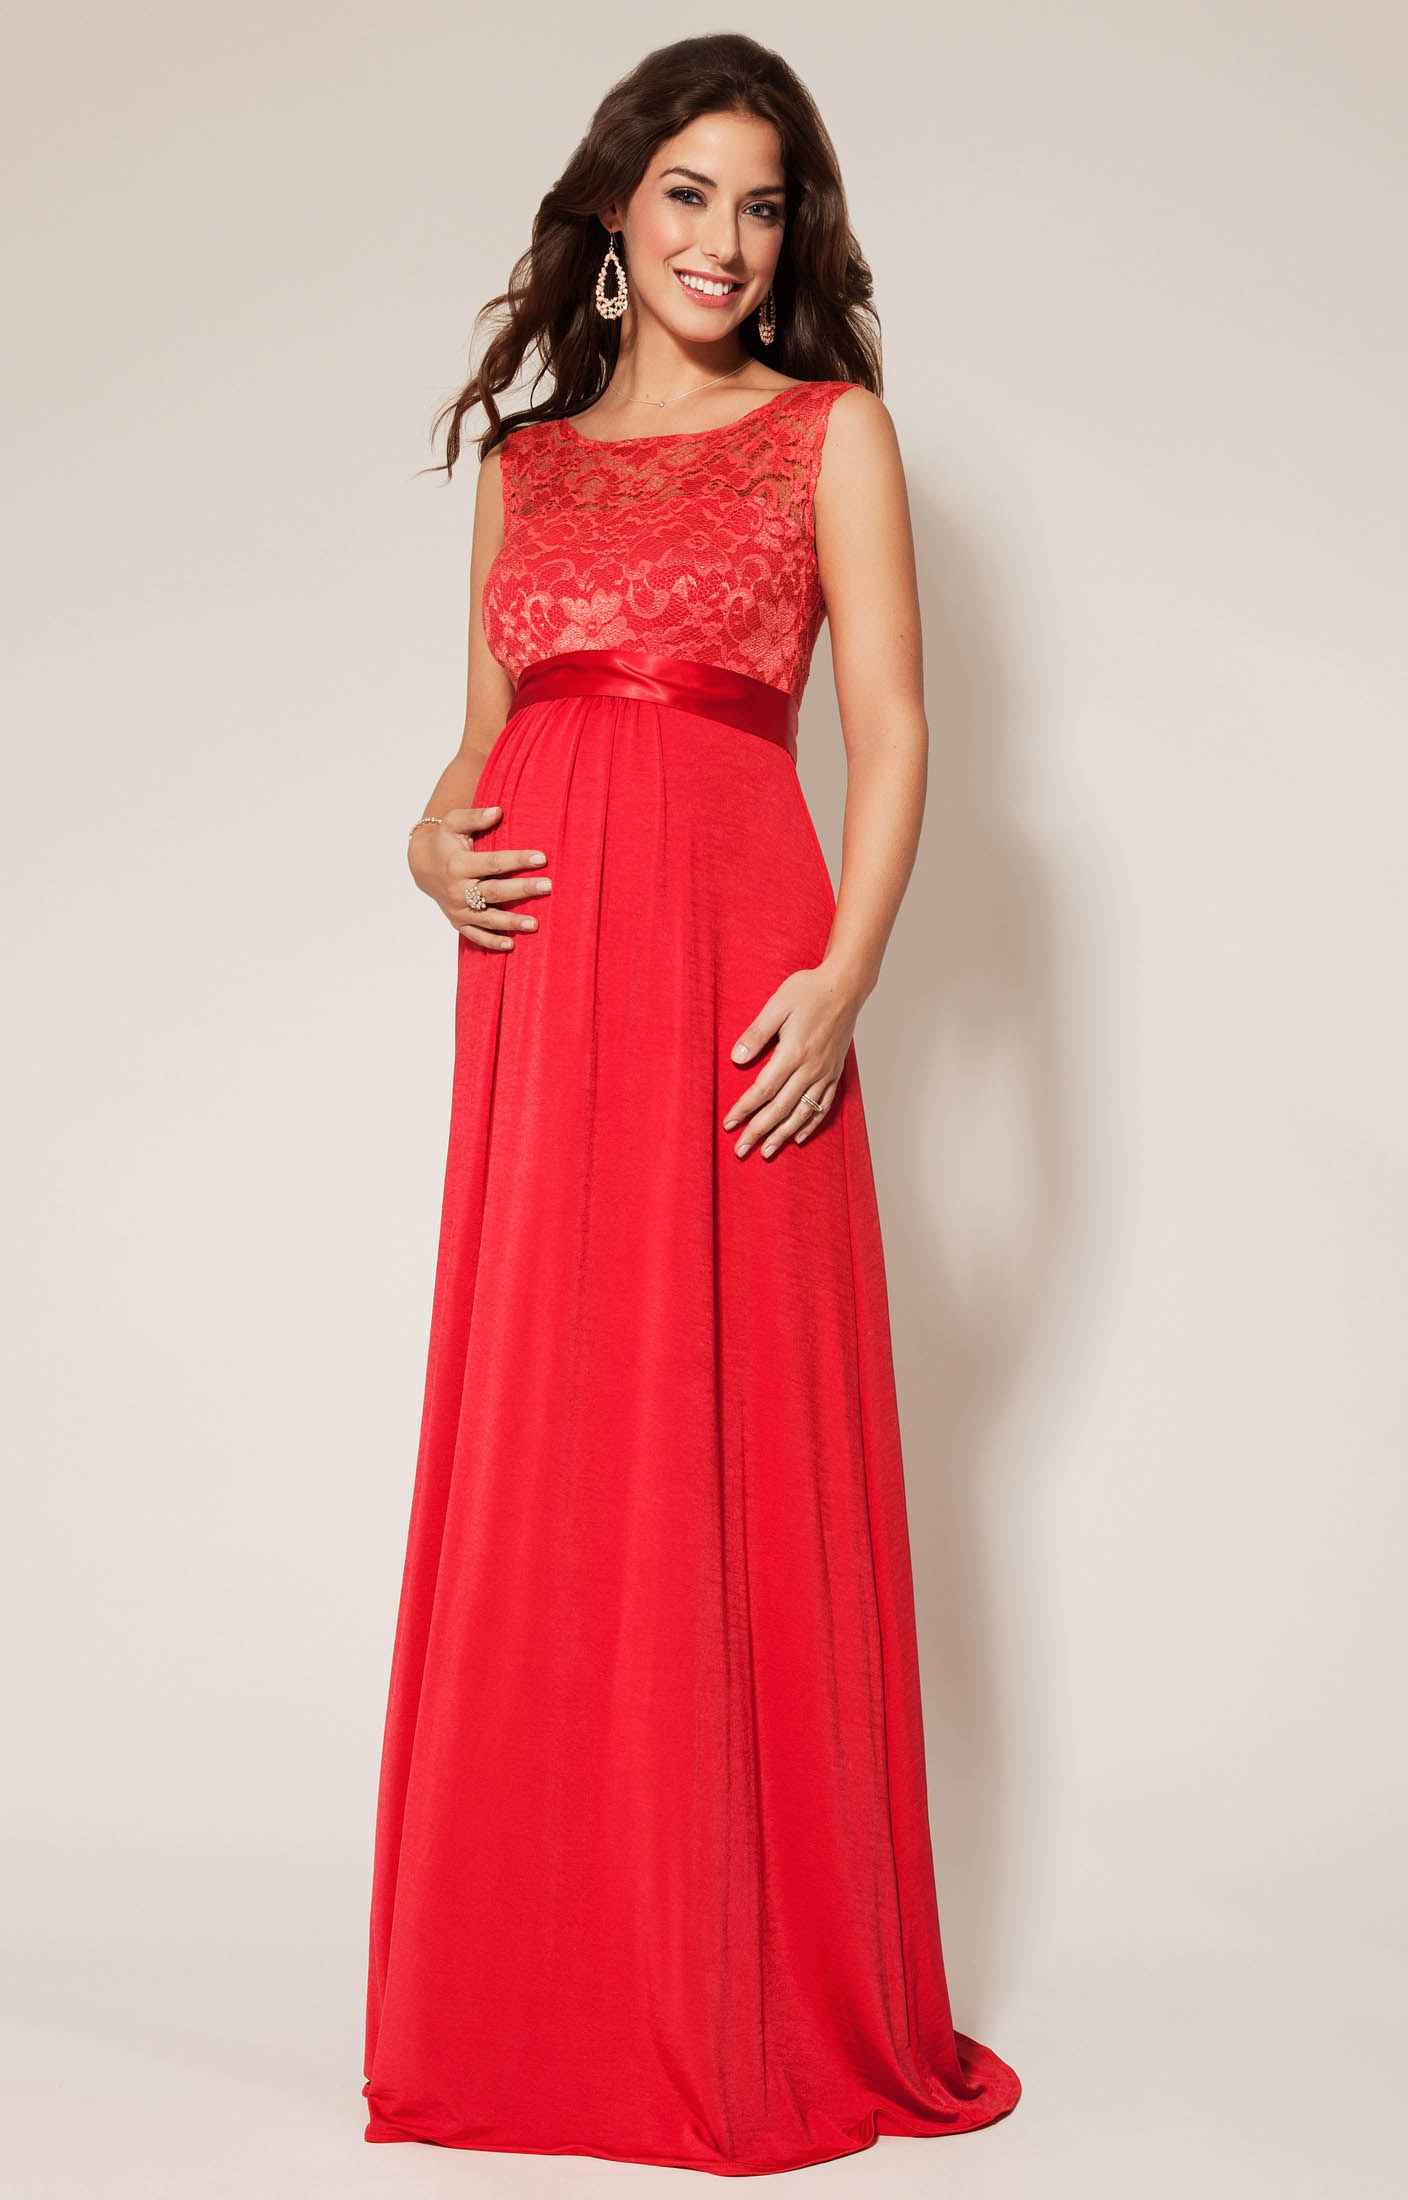 Find the Best and Softest Maternity Gowns – Carey Fashion